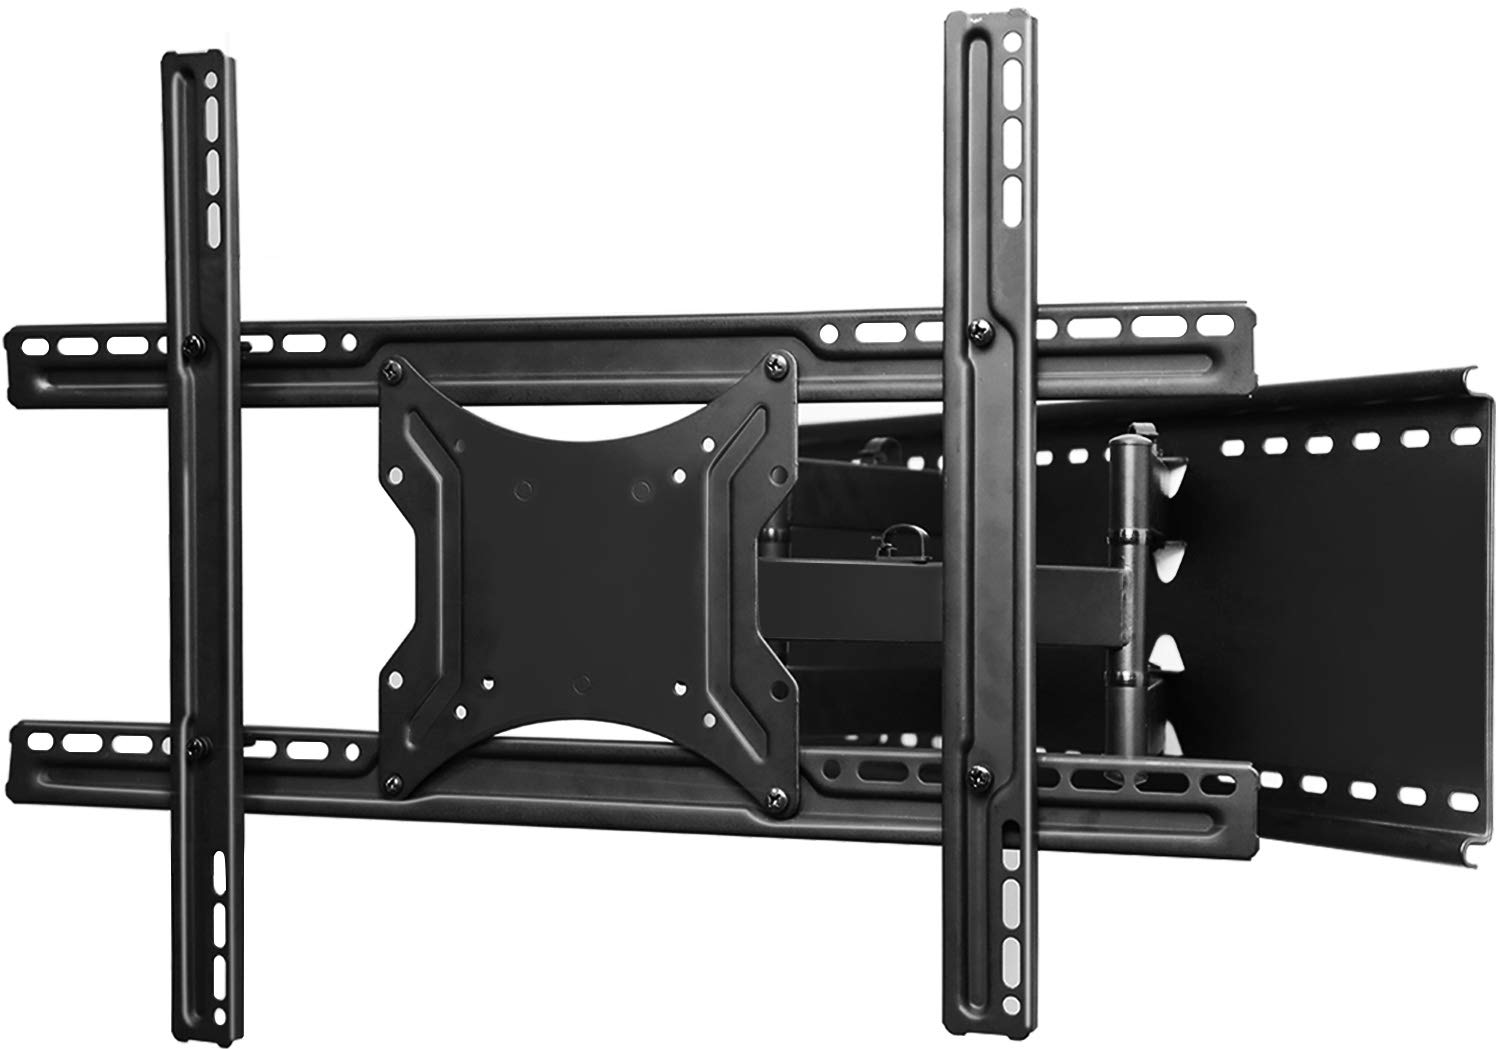 TV Wall Mount Bracket Full Motion- Fits 16'', 24'' Wood Studs Articulating Swivel TV Mount for 37-70 Inch LED, LCD, OLED, Flat Screen, Plasma TVs - Weight up to 132lbs - VESA 600x400mm PERLESMITH